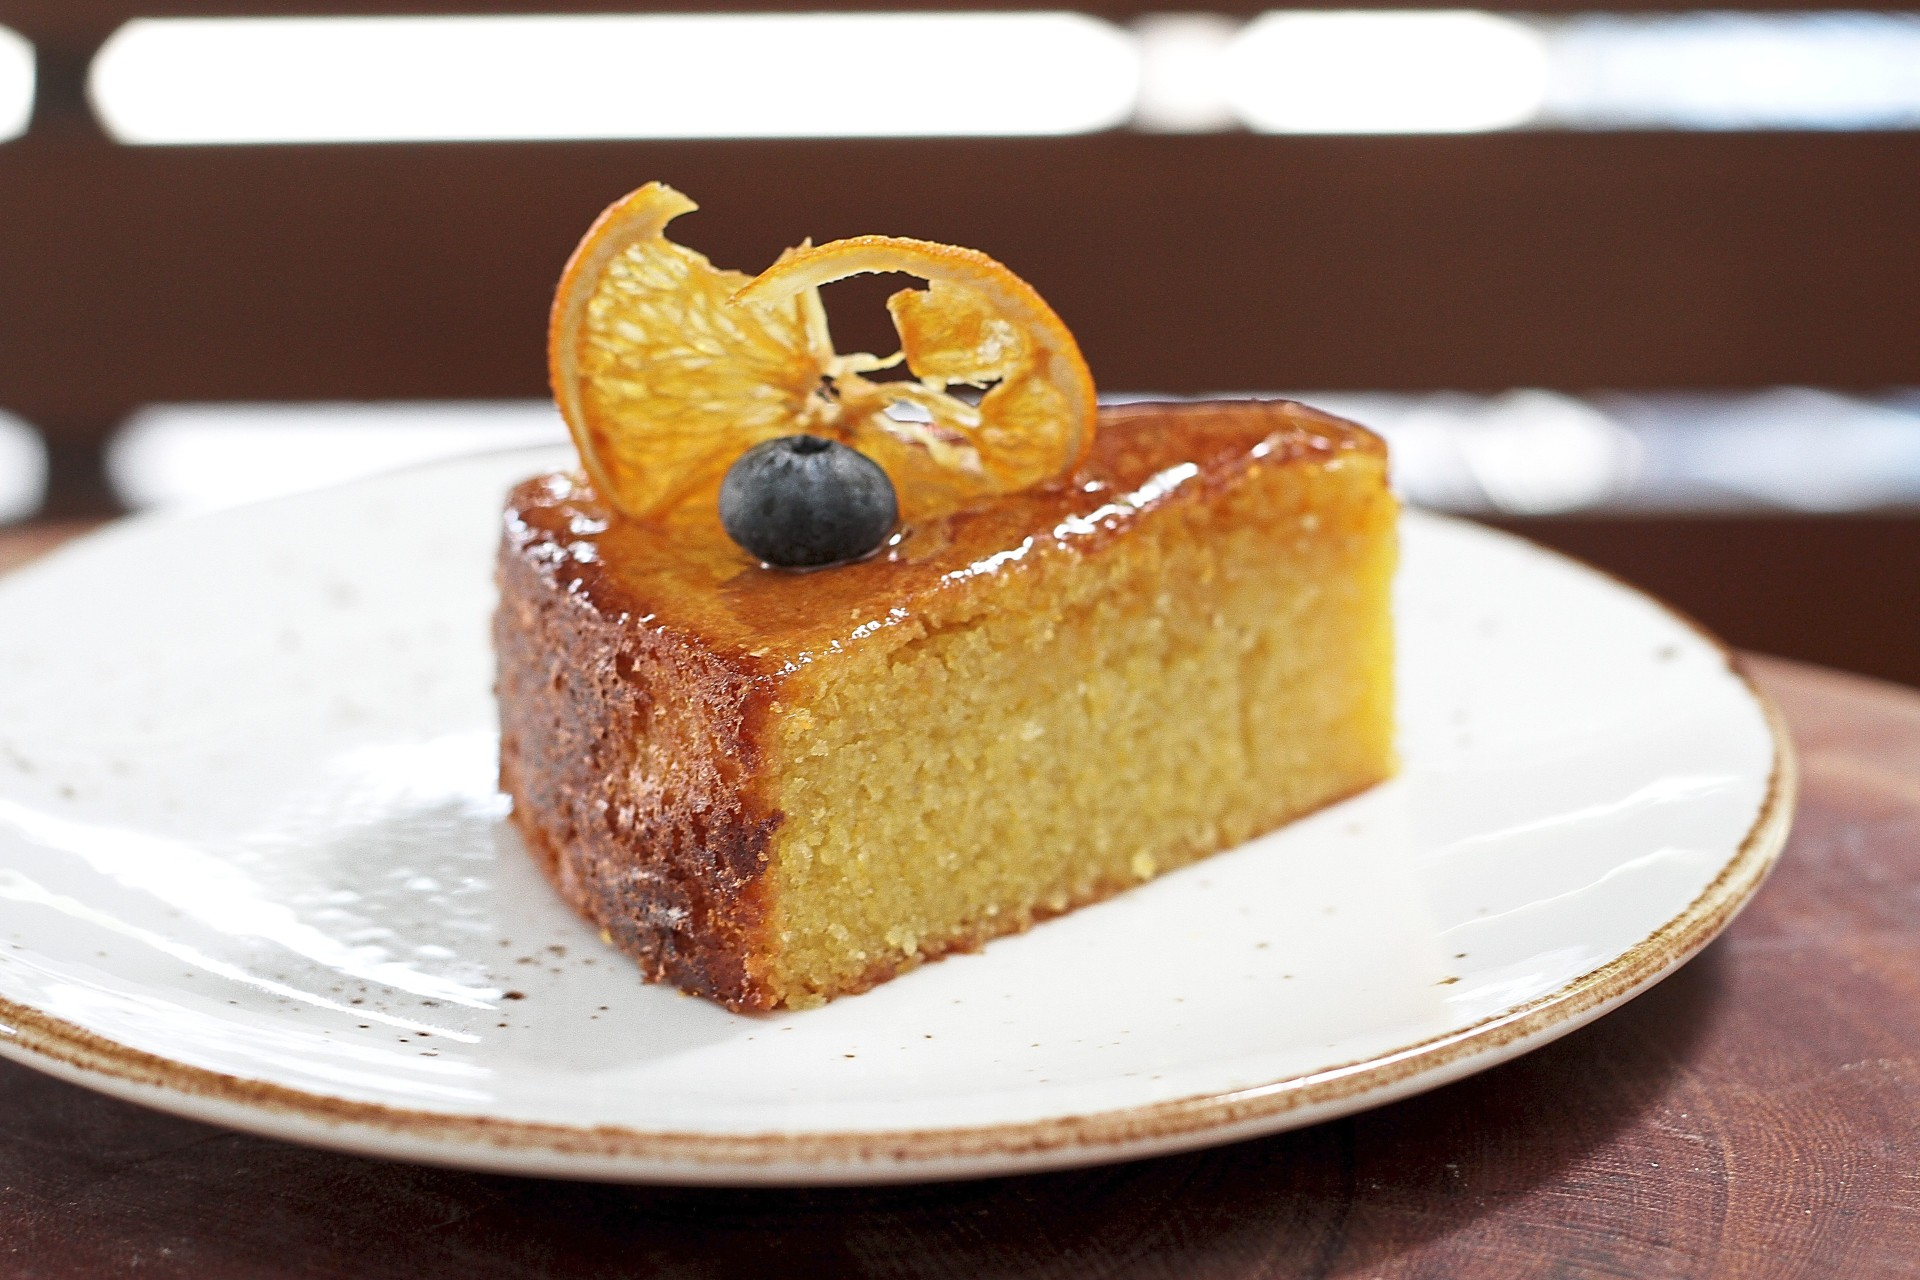 A take on a sugee cake, the orange polenta cake makes use of gluten-free polenta in place of semolina flour.